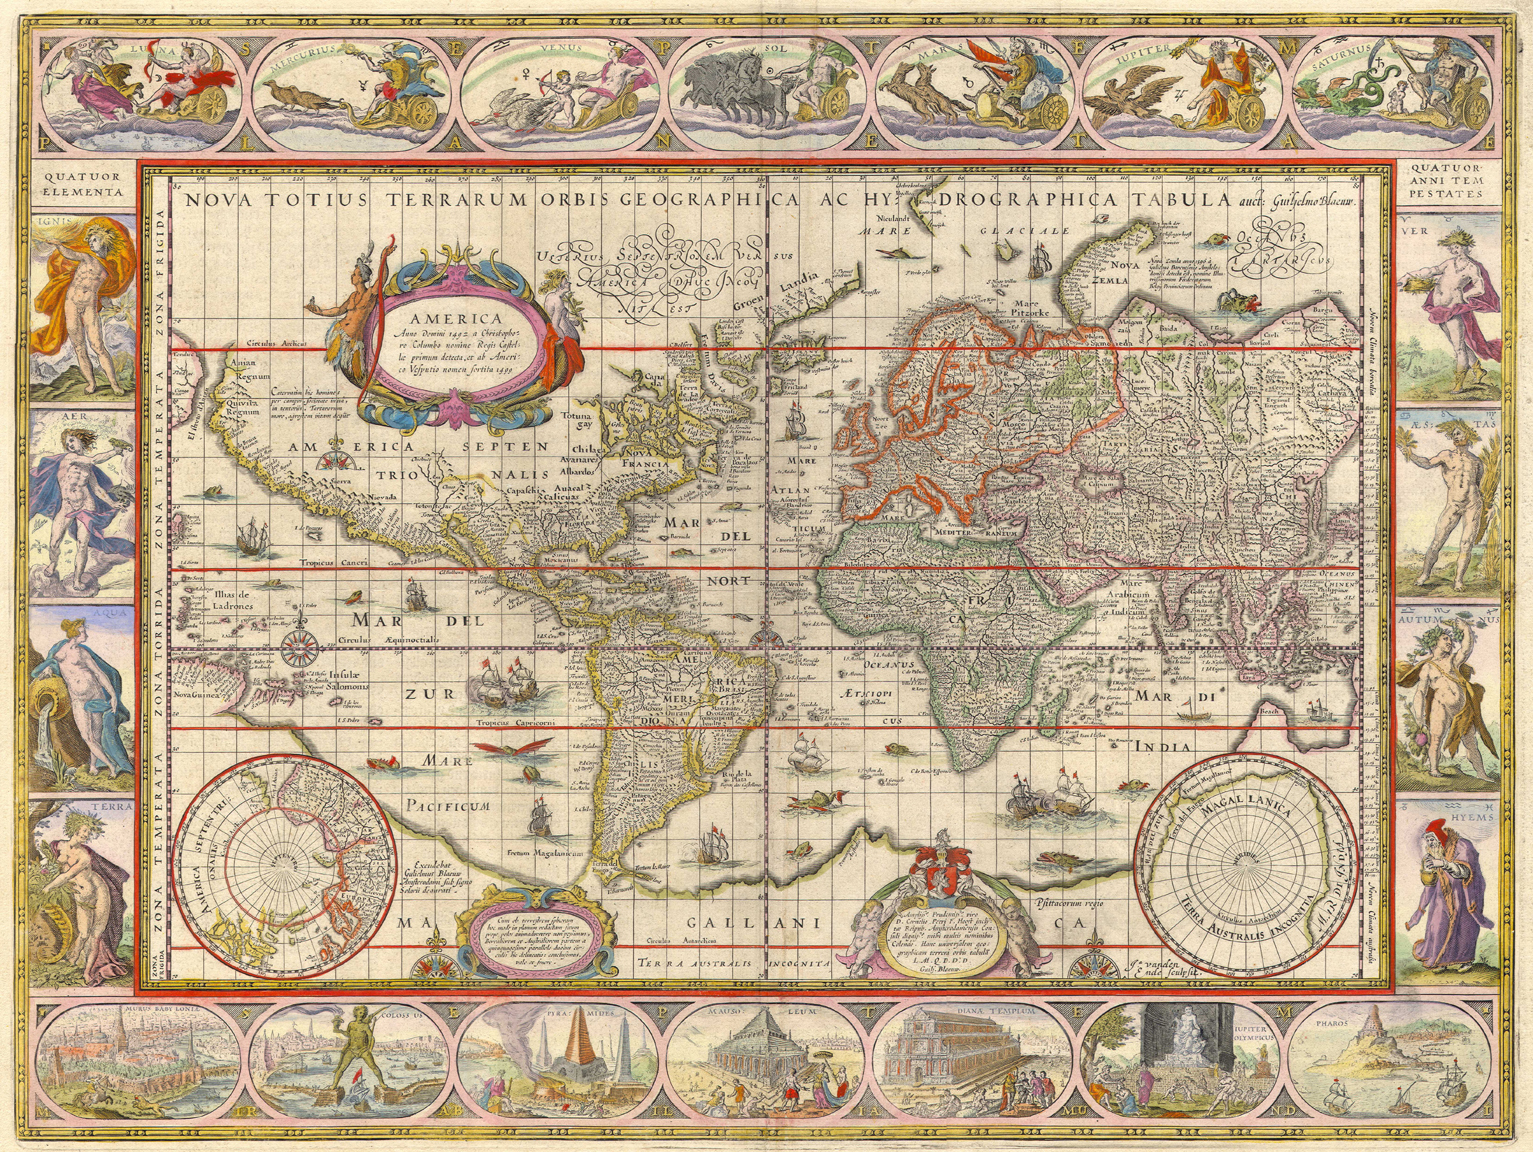 S vikas world map 17th century description world map published in 1627 by the german mathematician astronomer and astrologer johannes kepler gumiabroncs Image collections